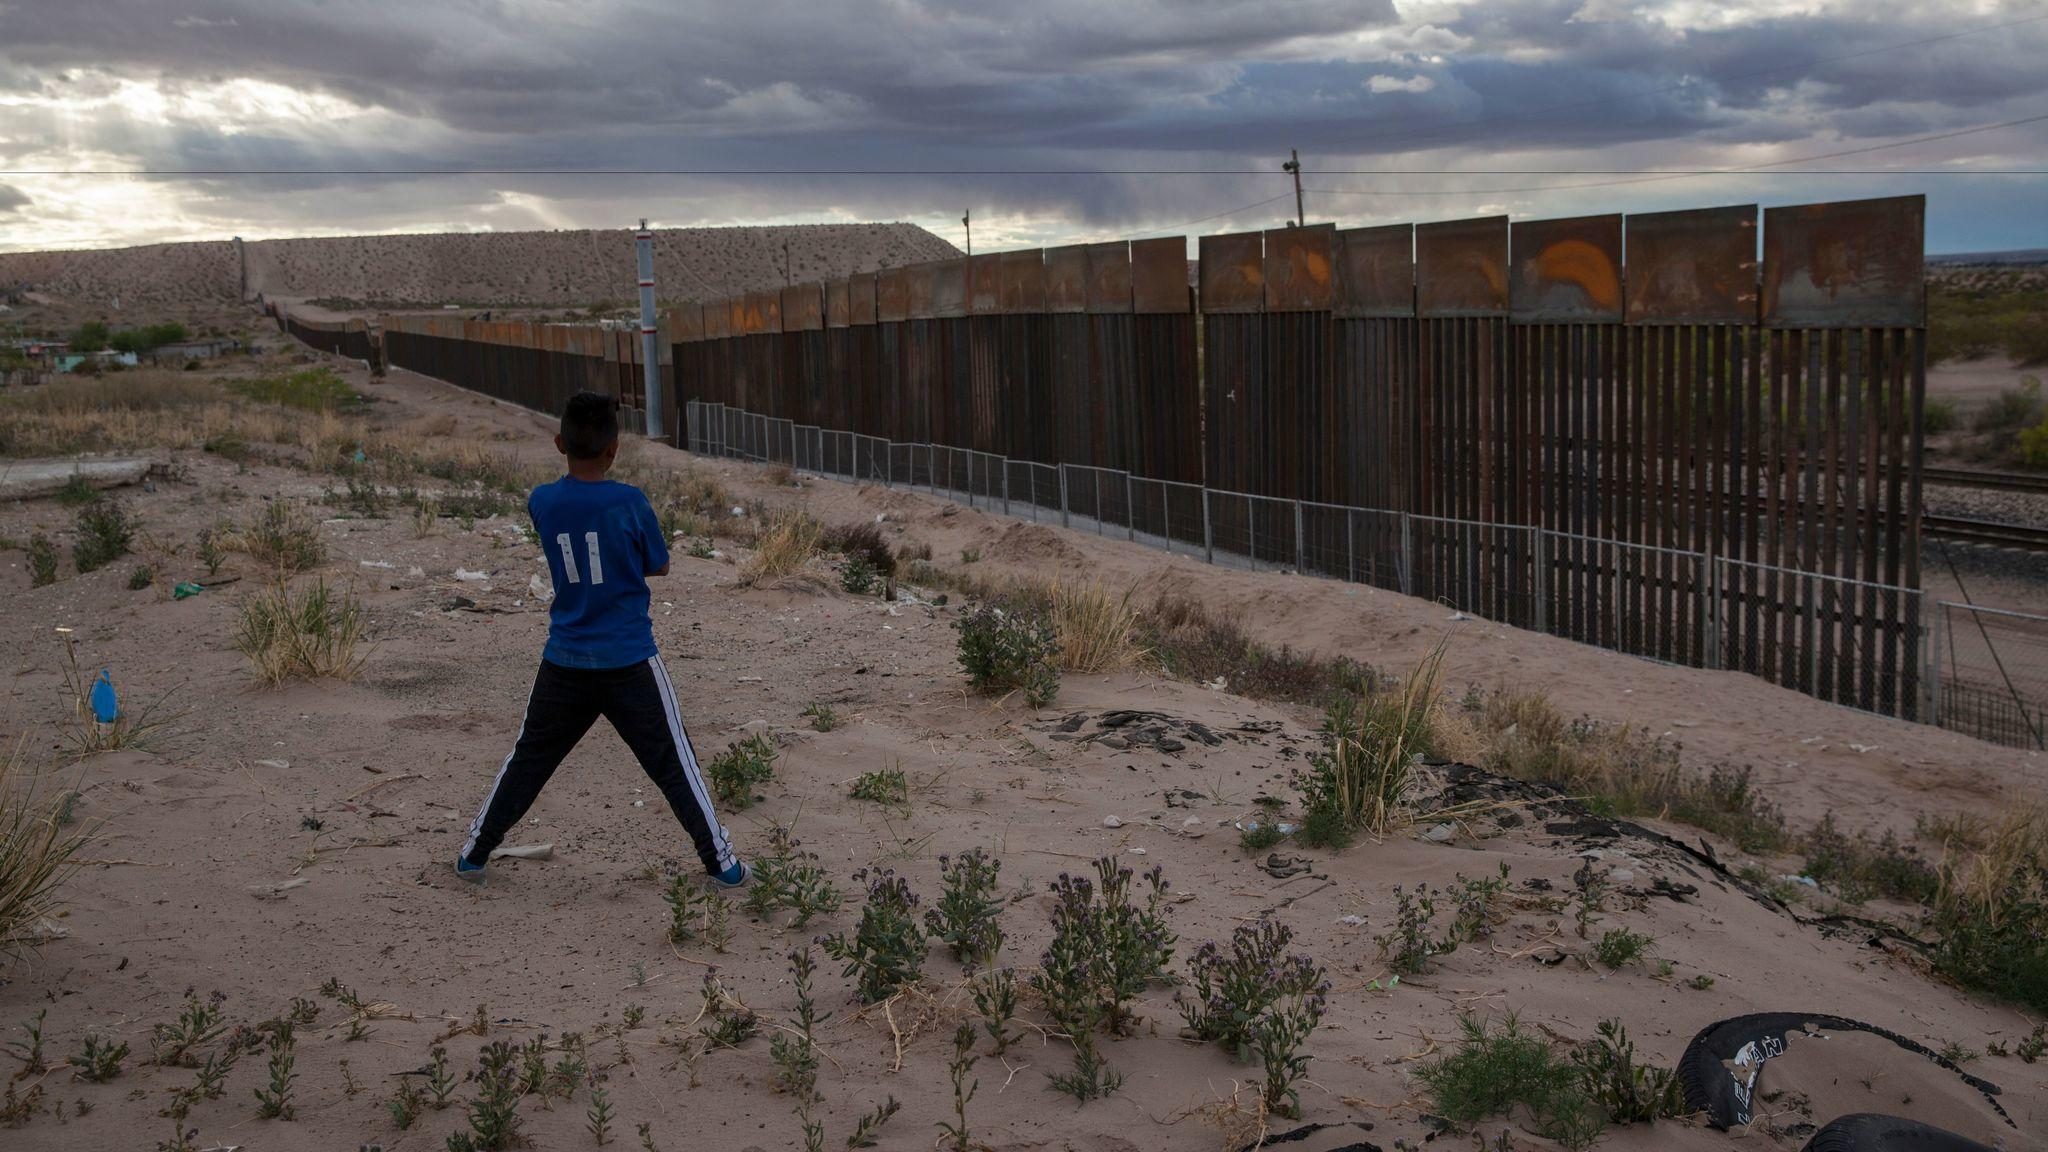 A boy in Ciudad Juarez, Mexico, looks at the area where a taller fence is being built along the U.S.-Mexico border near Sunland Park, N.M., on March 29. (Rodrigo Abd / Associated Press)